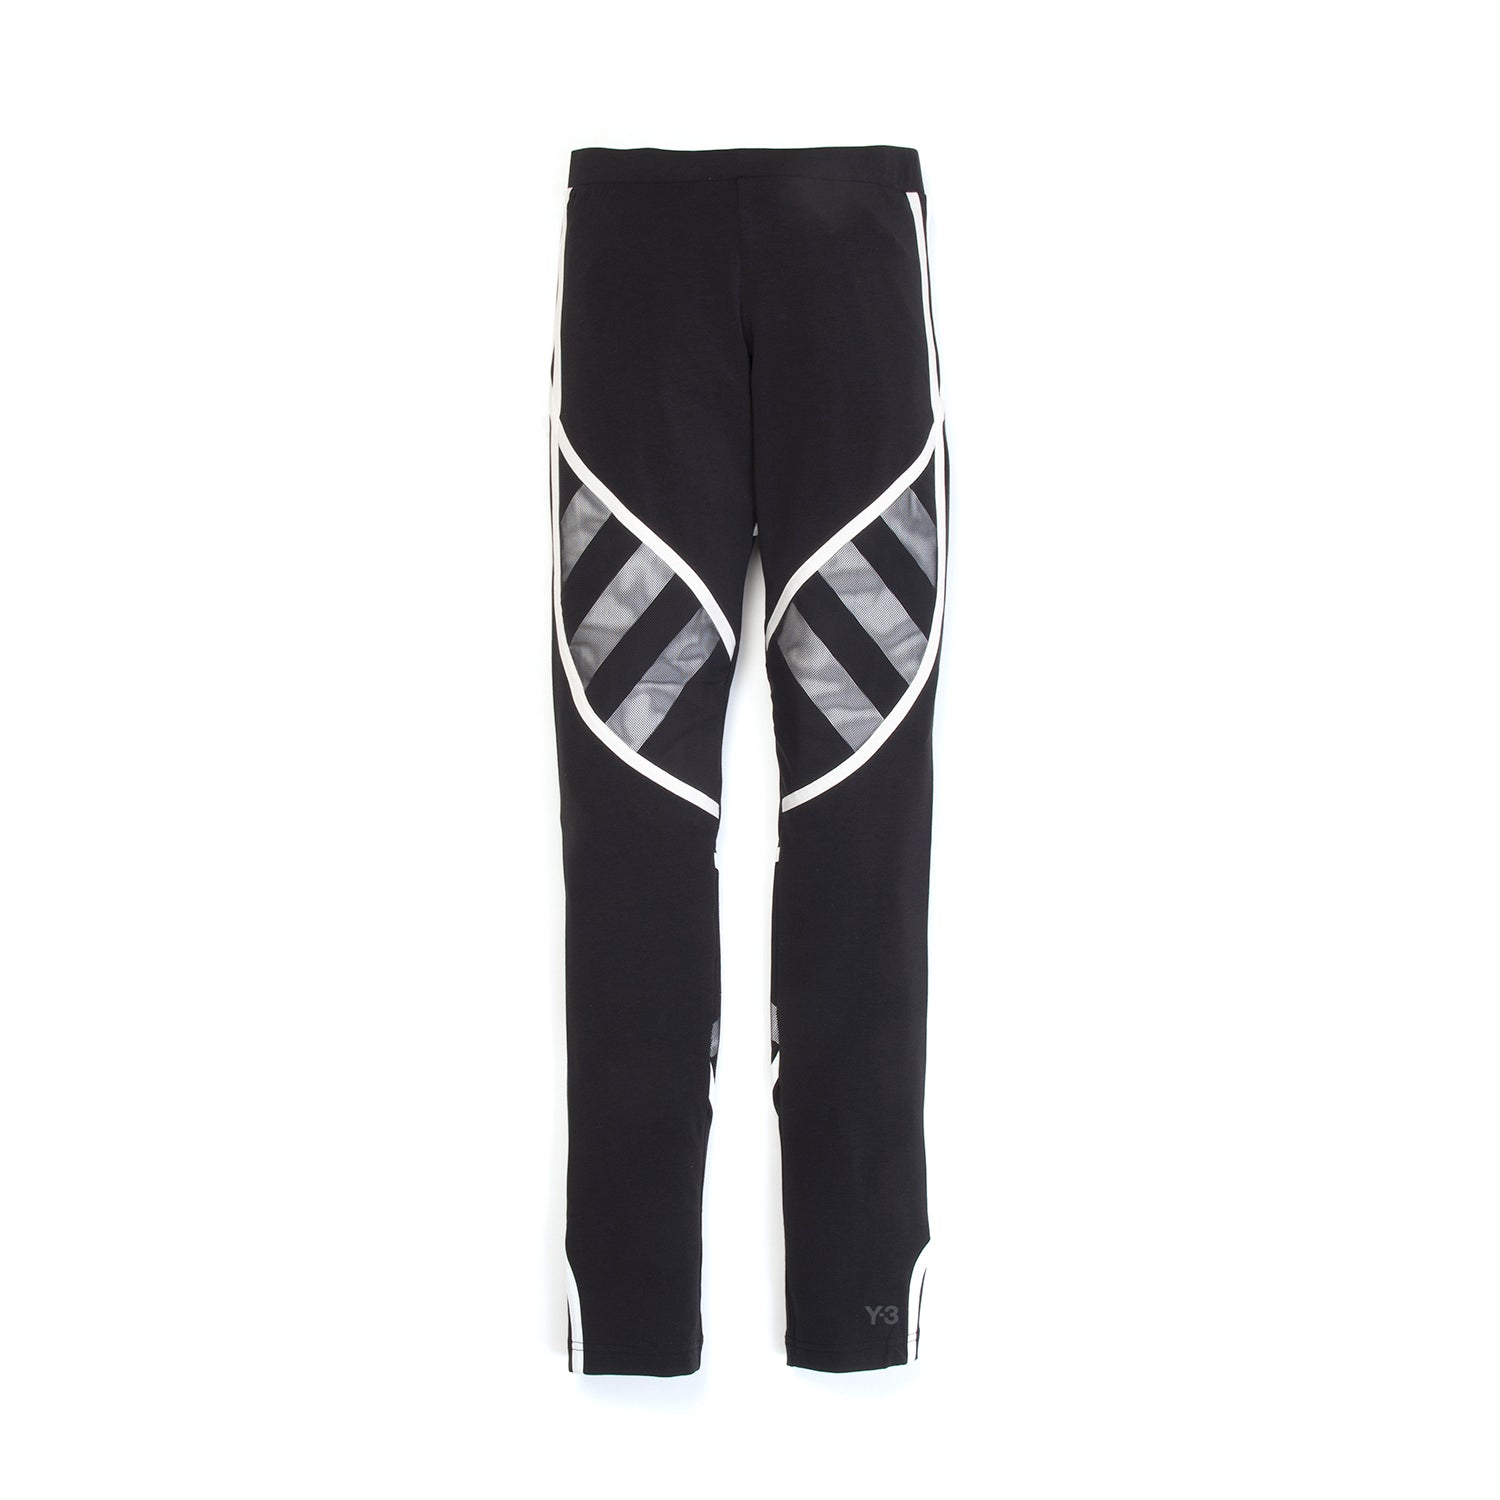 adidas Y-3 W Mesh Leggings Black / Core White - CY8454